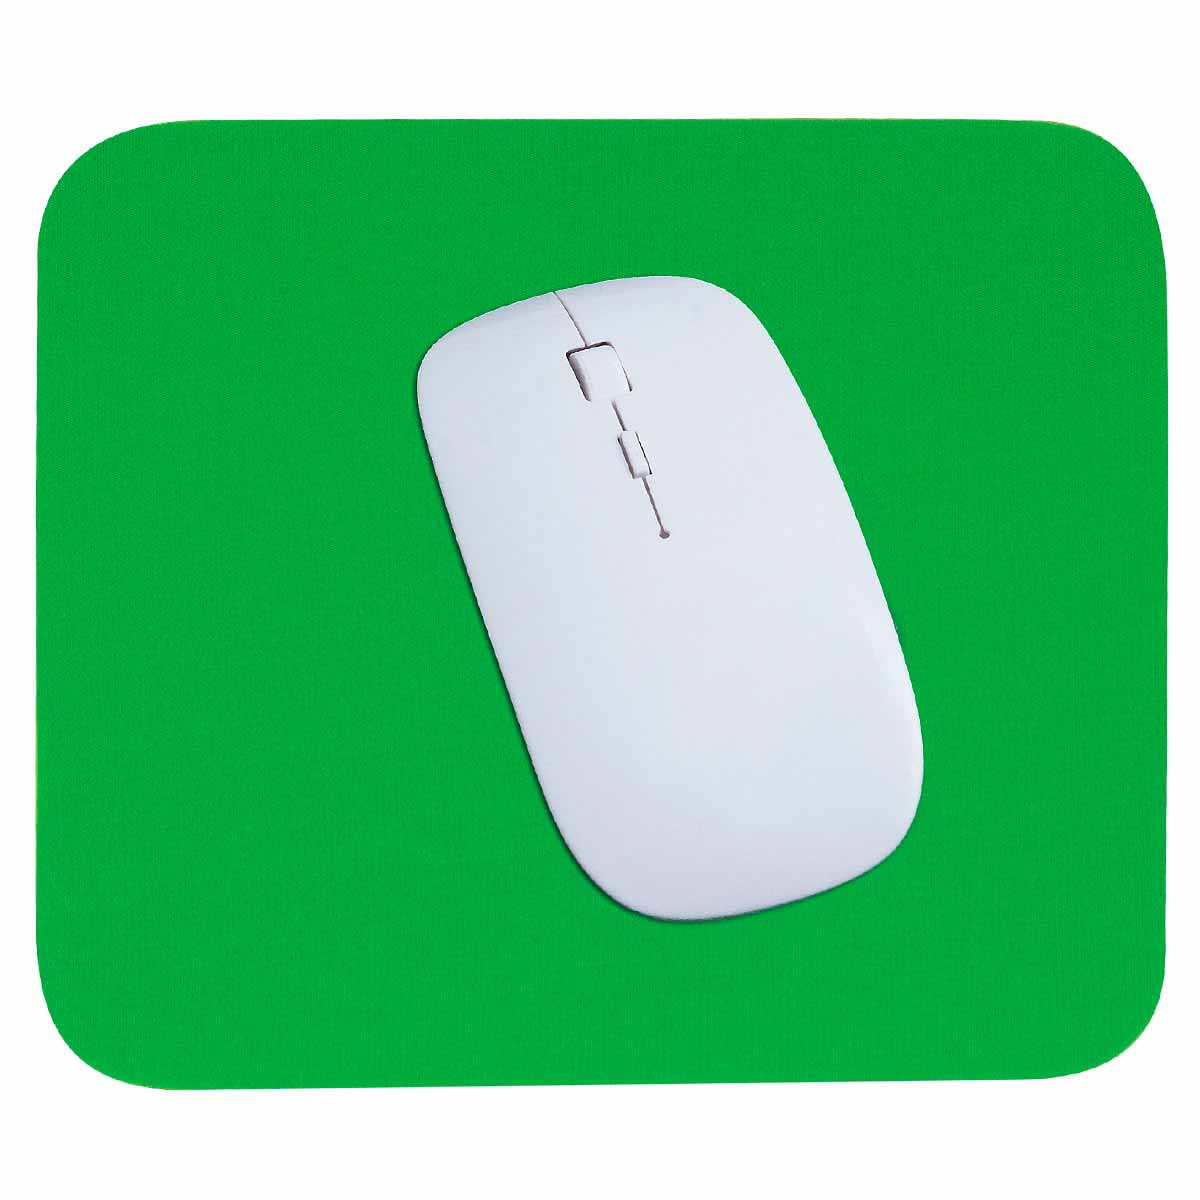 MOUSE PAD RECTANGULAR COLOR VERDE